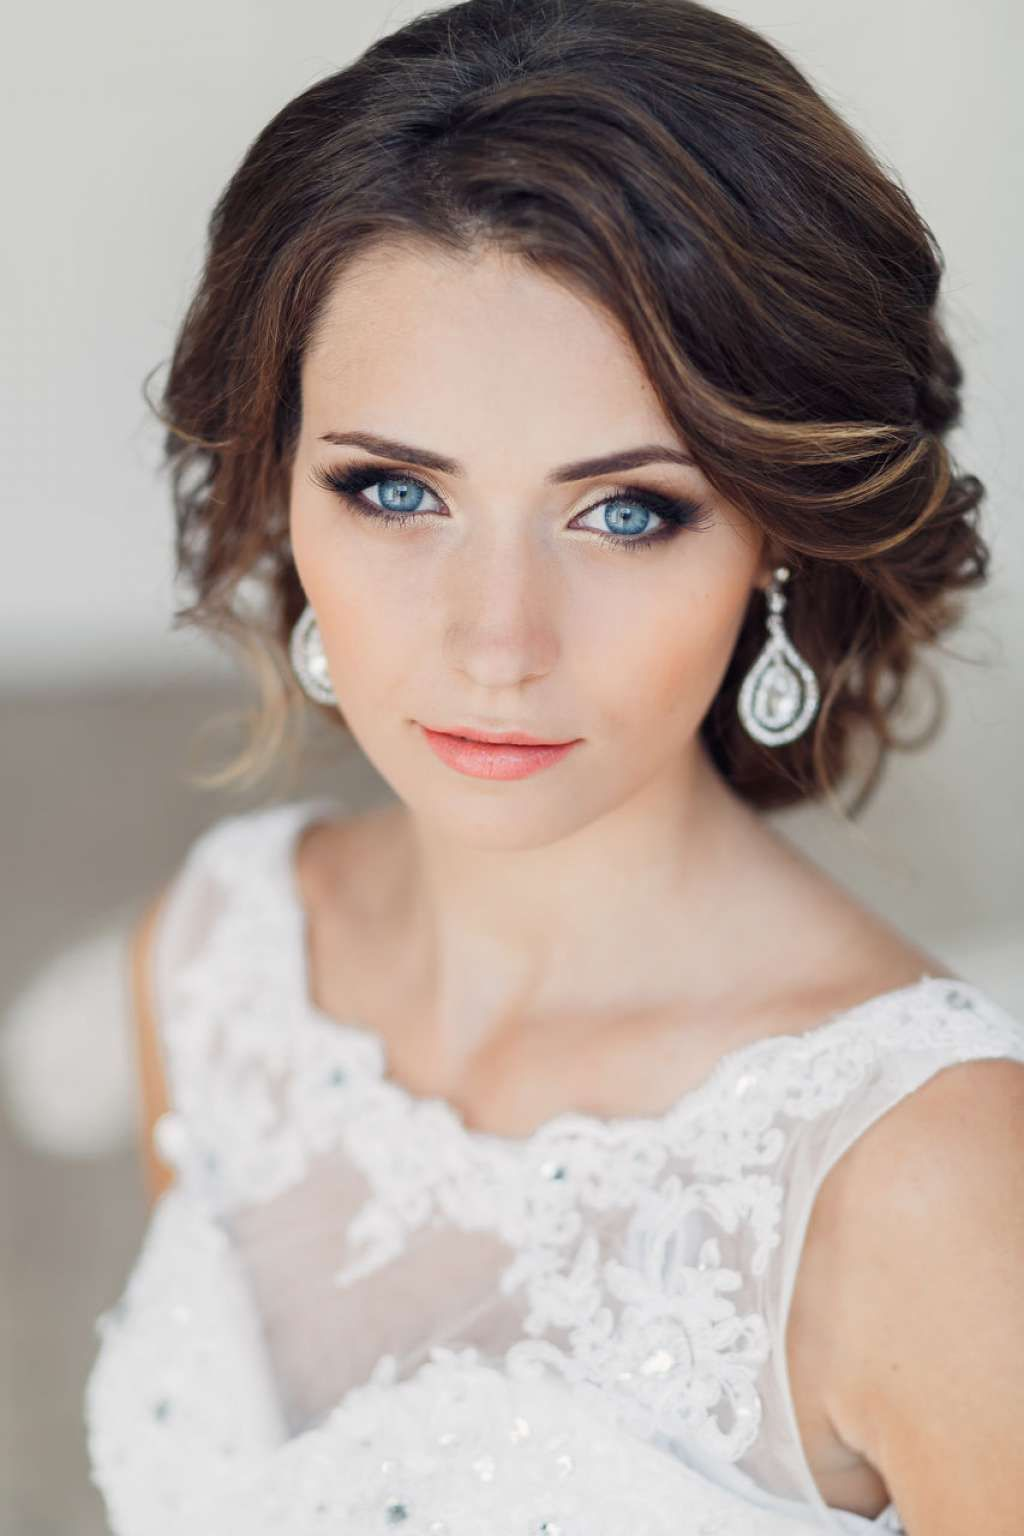 Bridal makeup for blue eyes and dark hair onelady hair